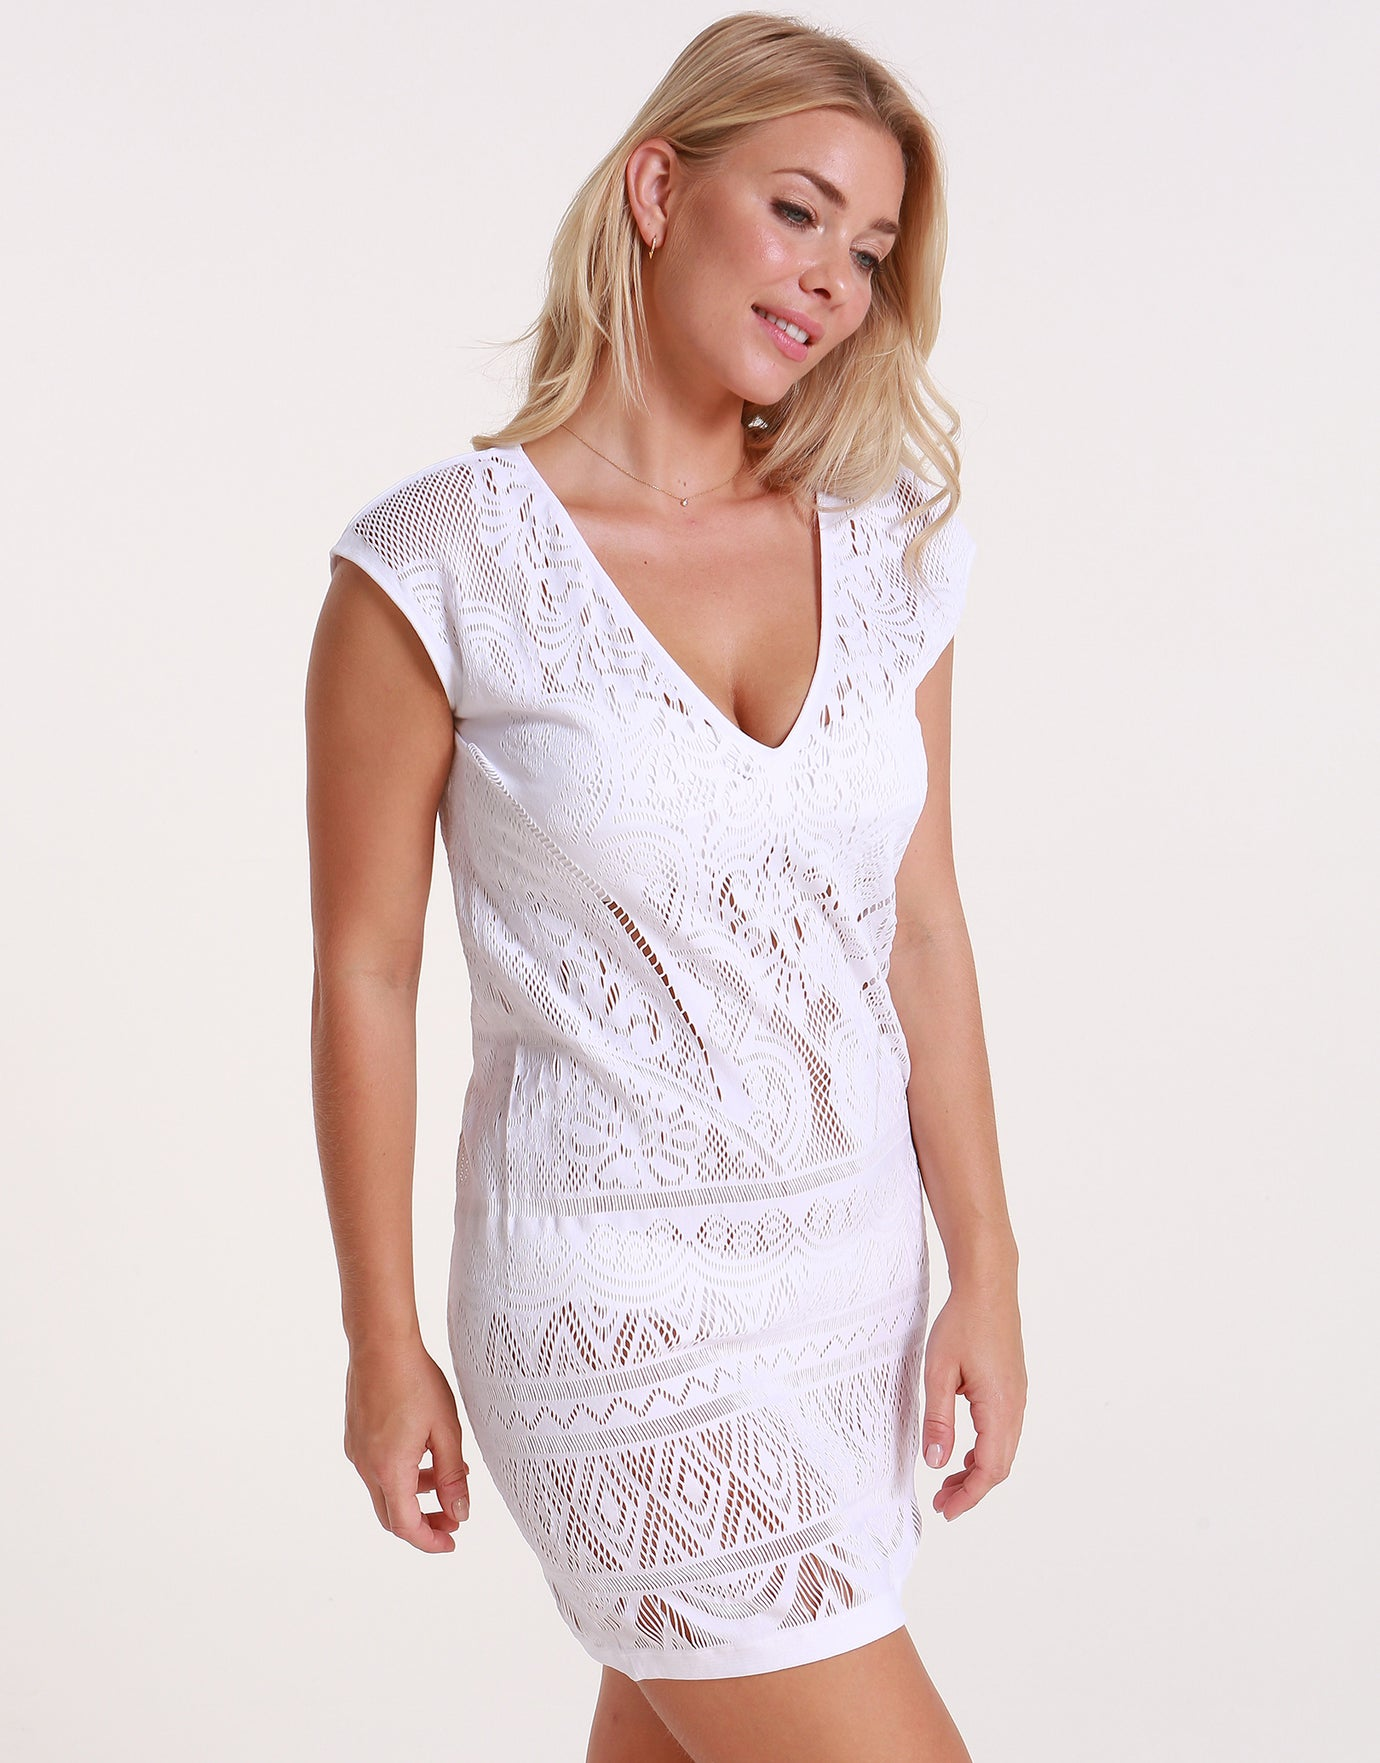 Jets Intrigue Shift Dress - White